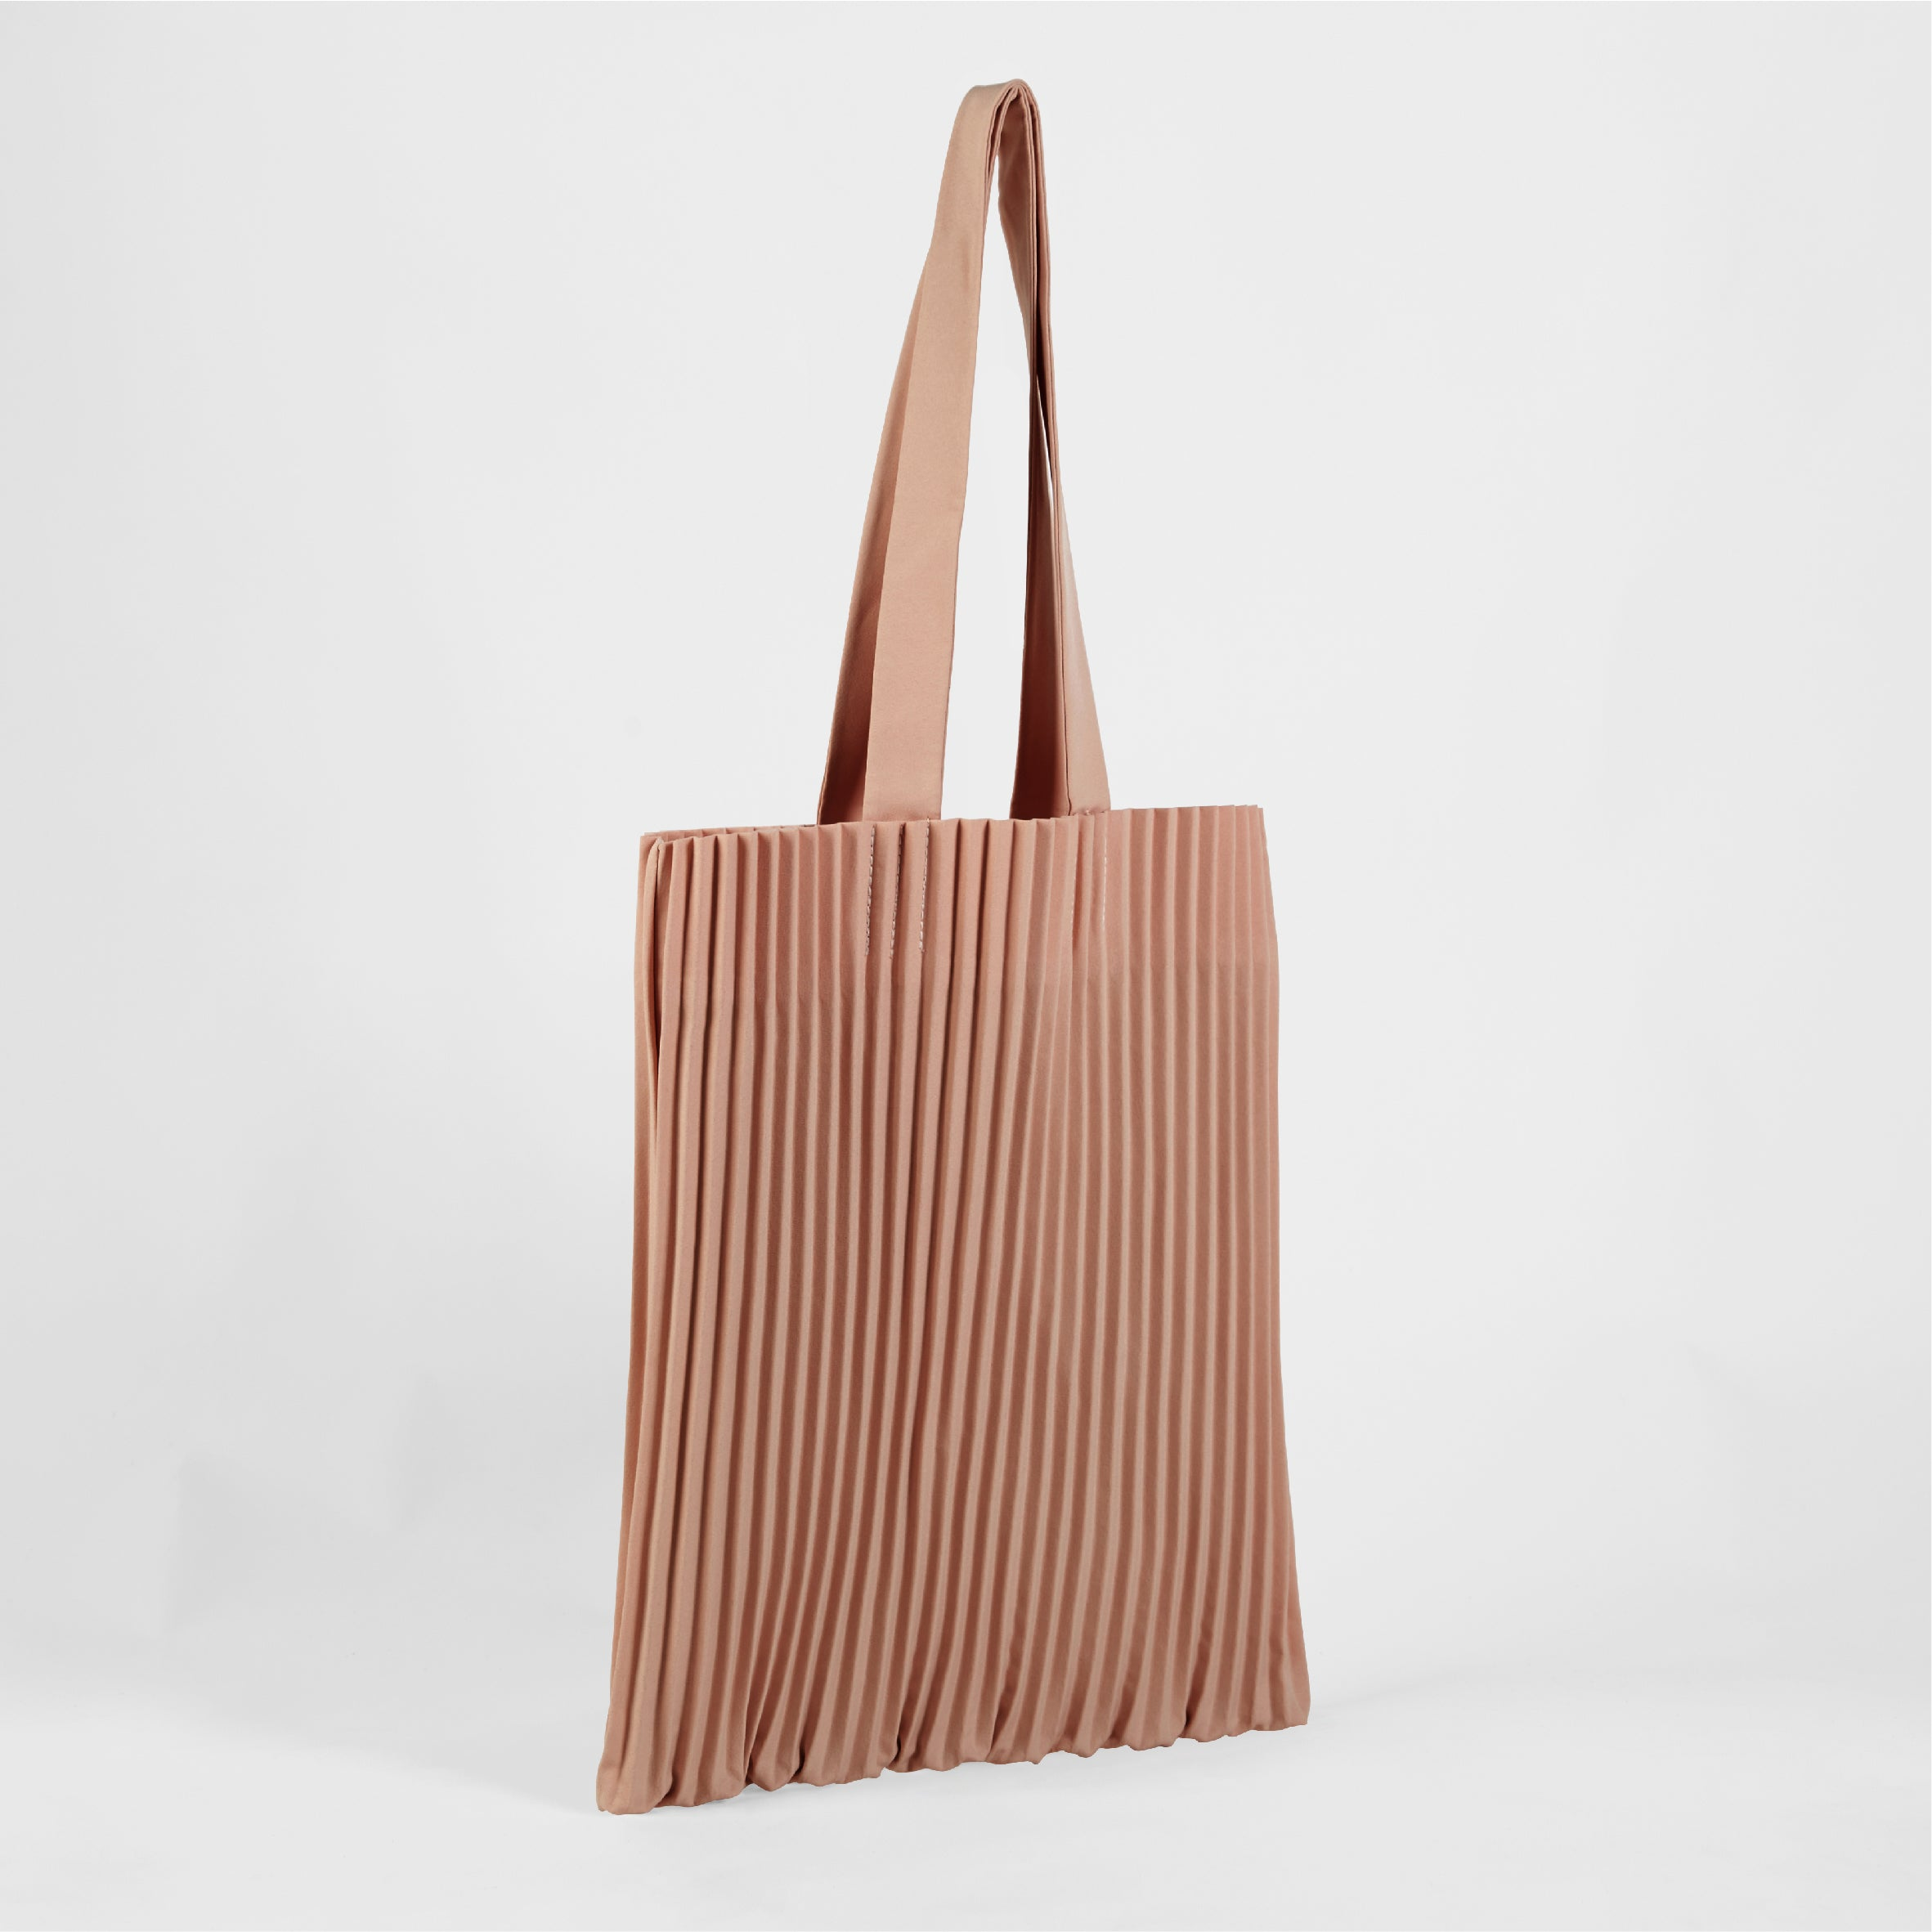 aPulp | Tote bag in Sand